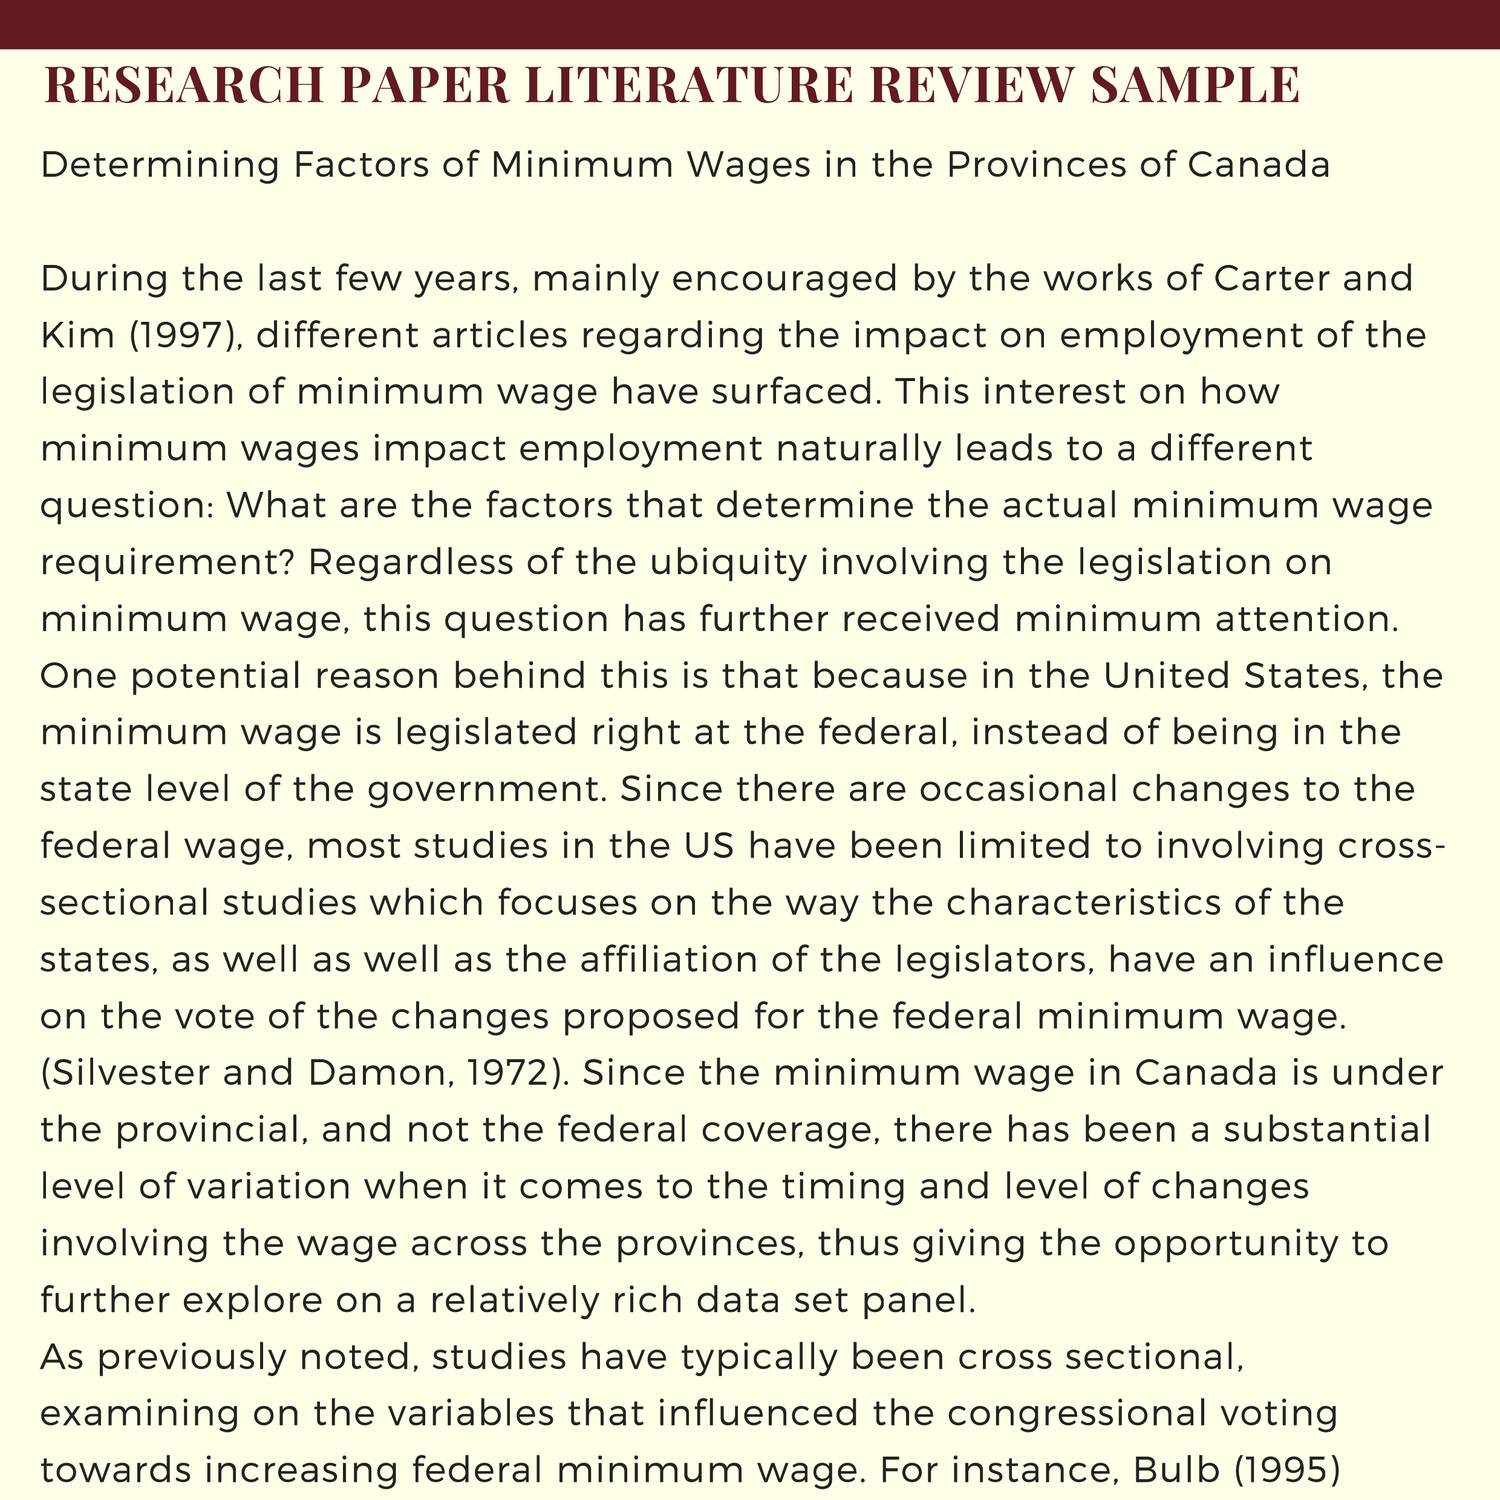 019 Research Paper Literature Review Samplecluding Impressive Including In Meaning Of How To Write Related Pdf Full